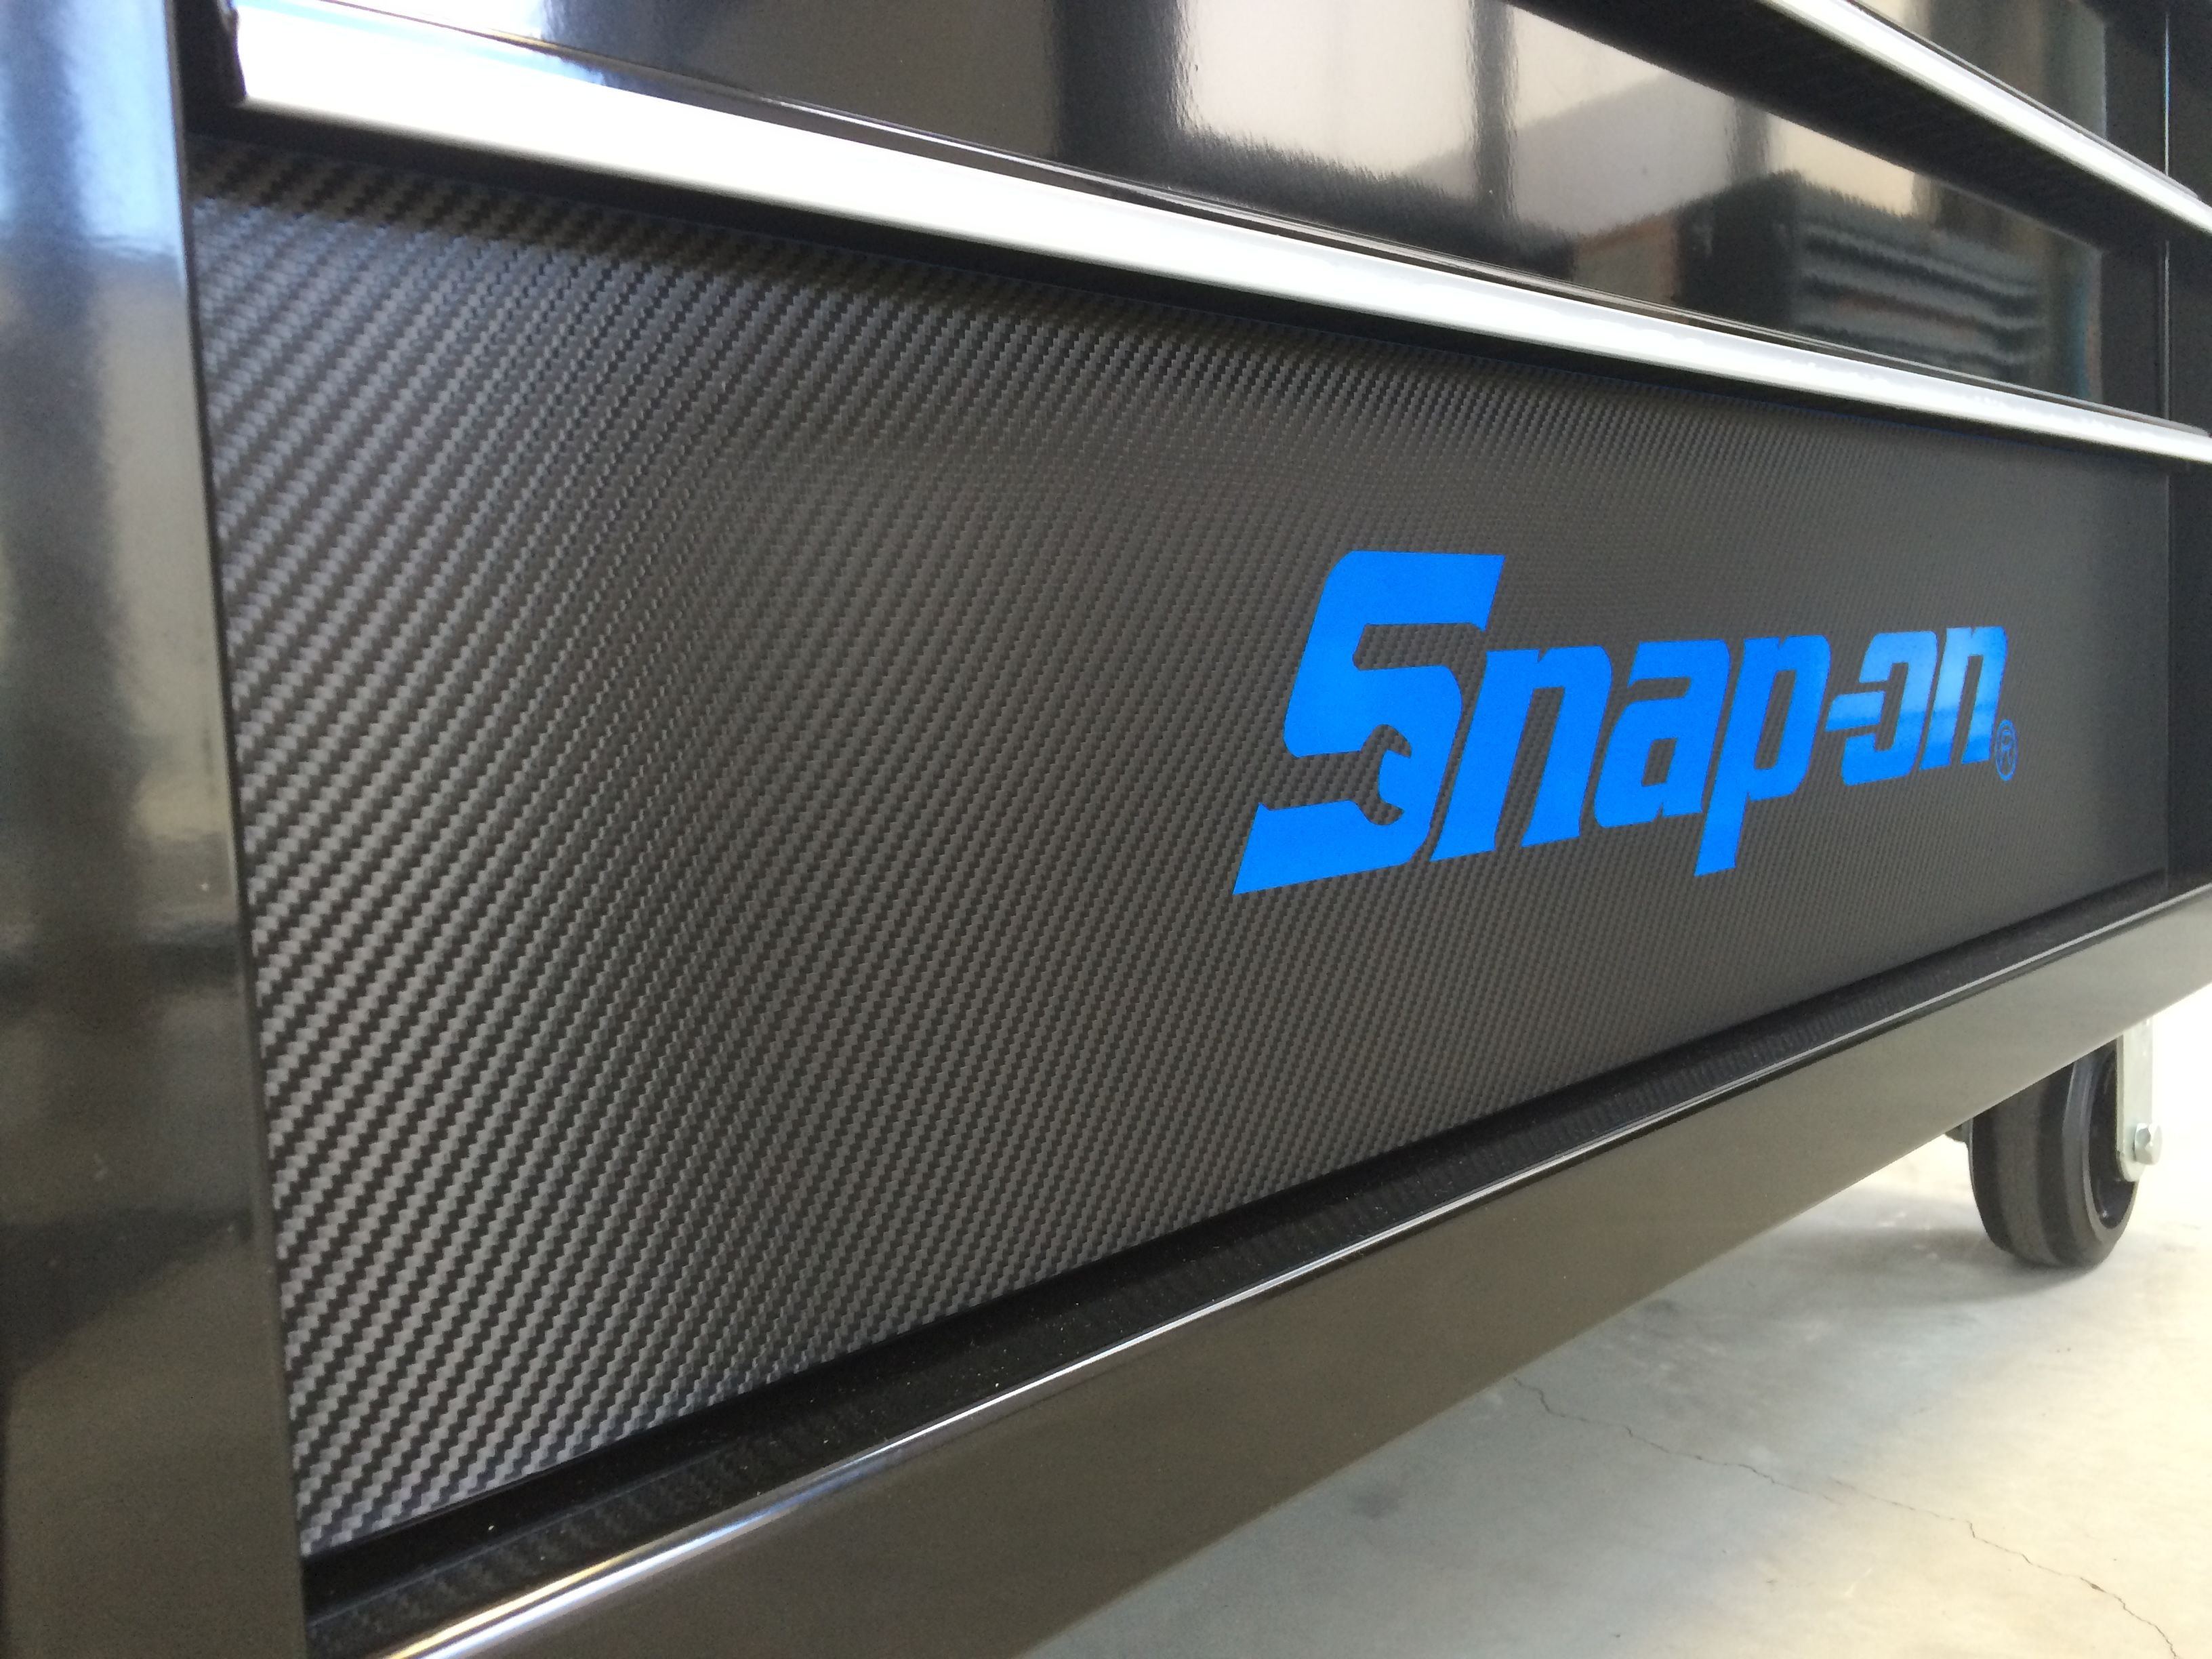 Custom Snapon tool box carbon fibre wrap! Tool Box